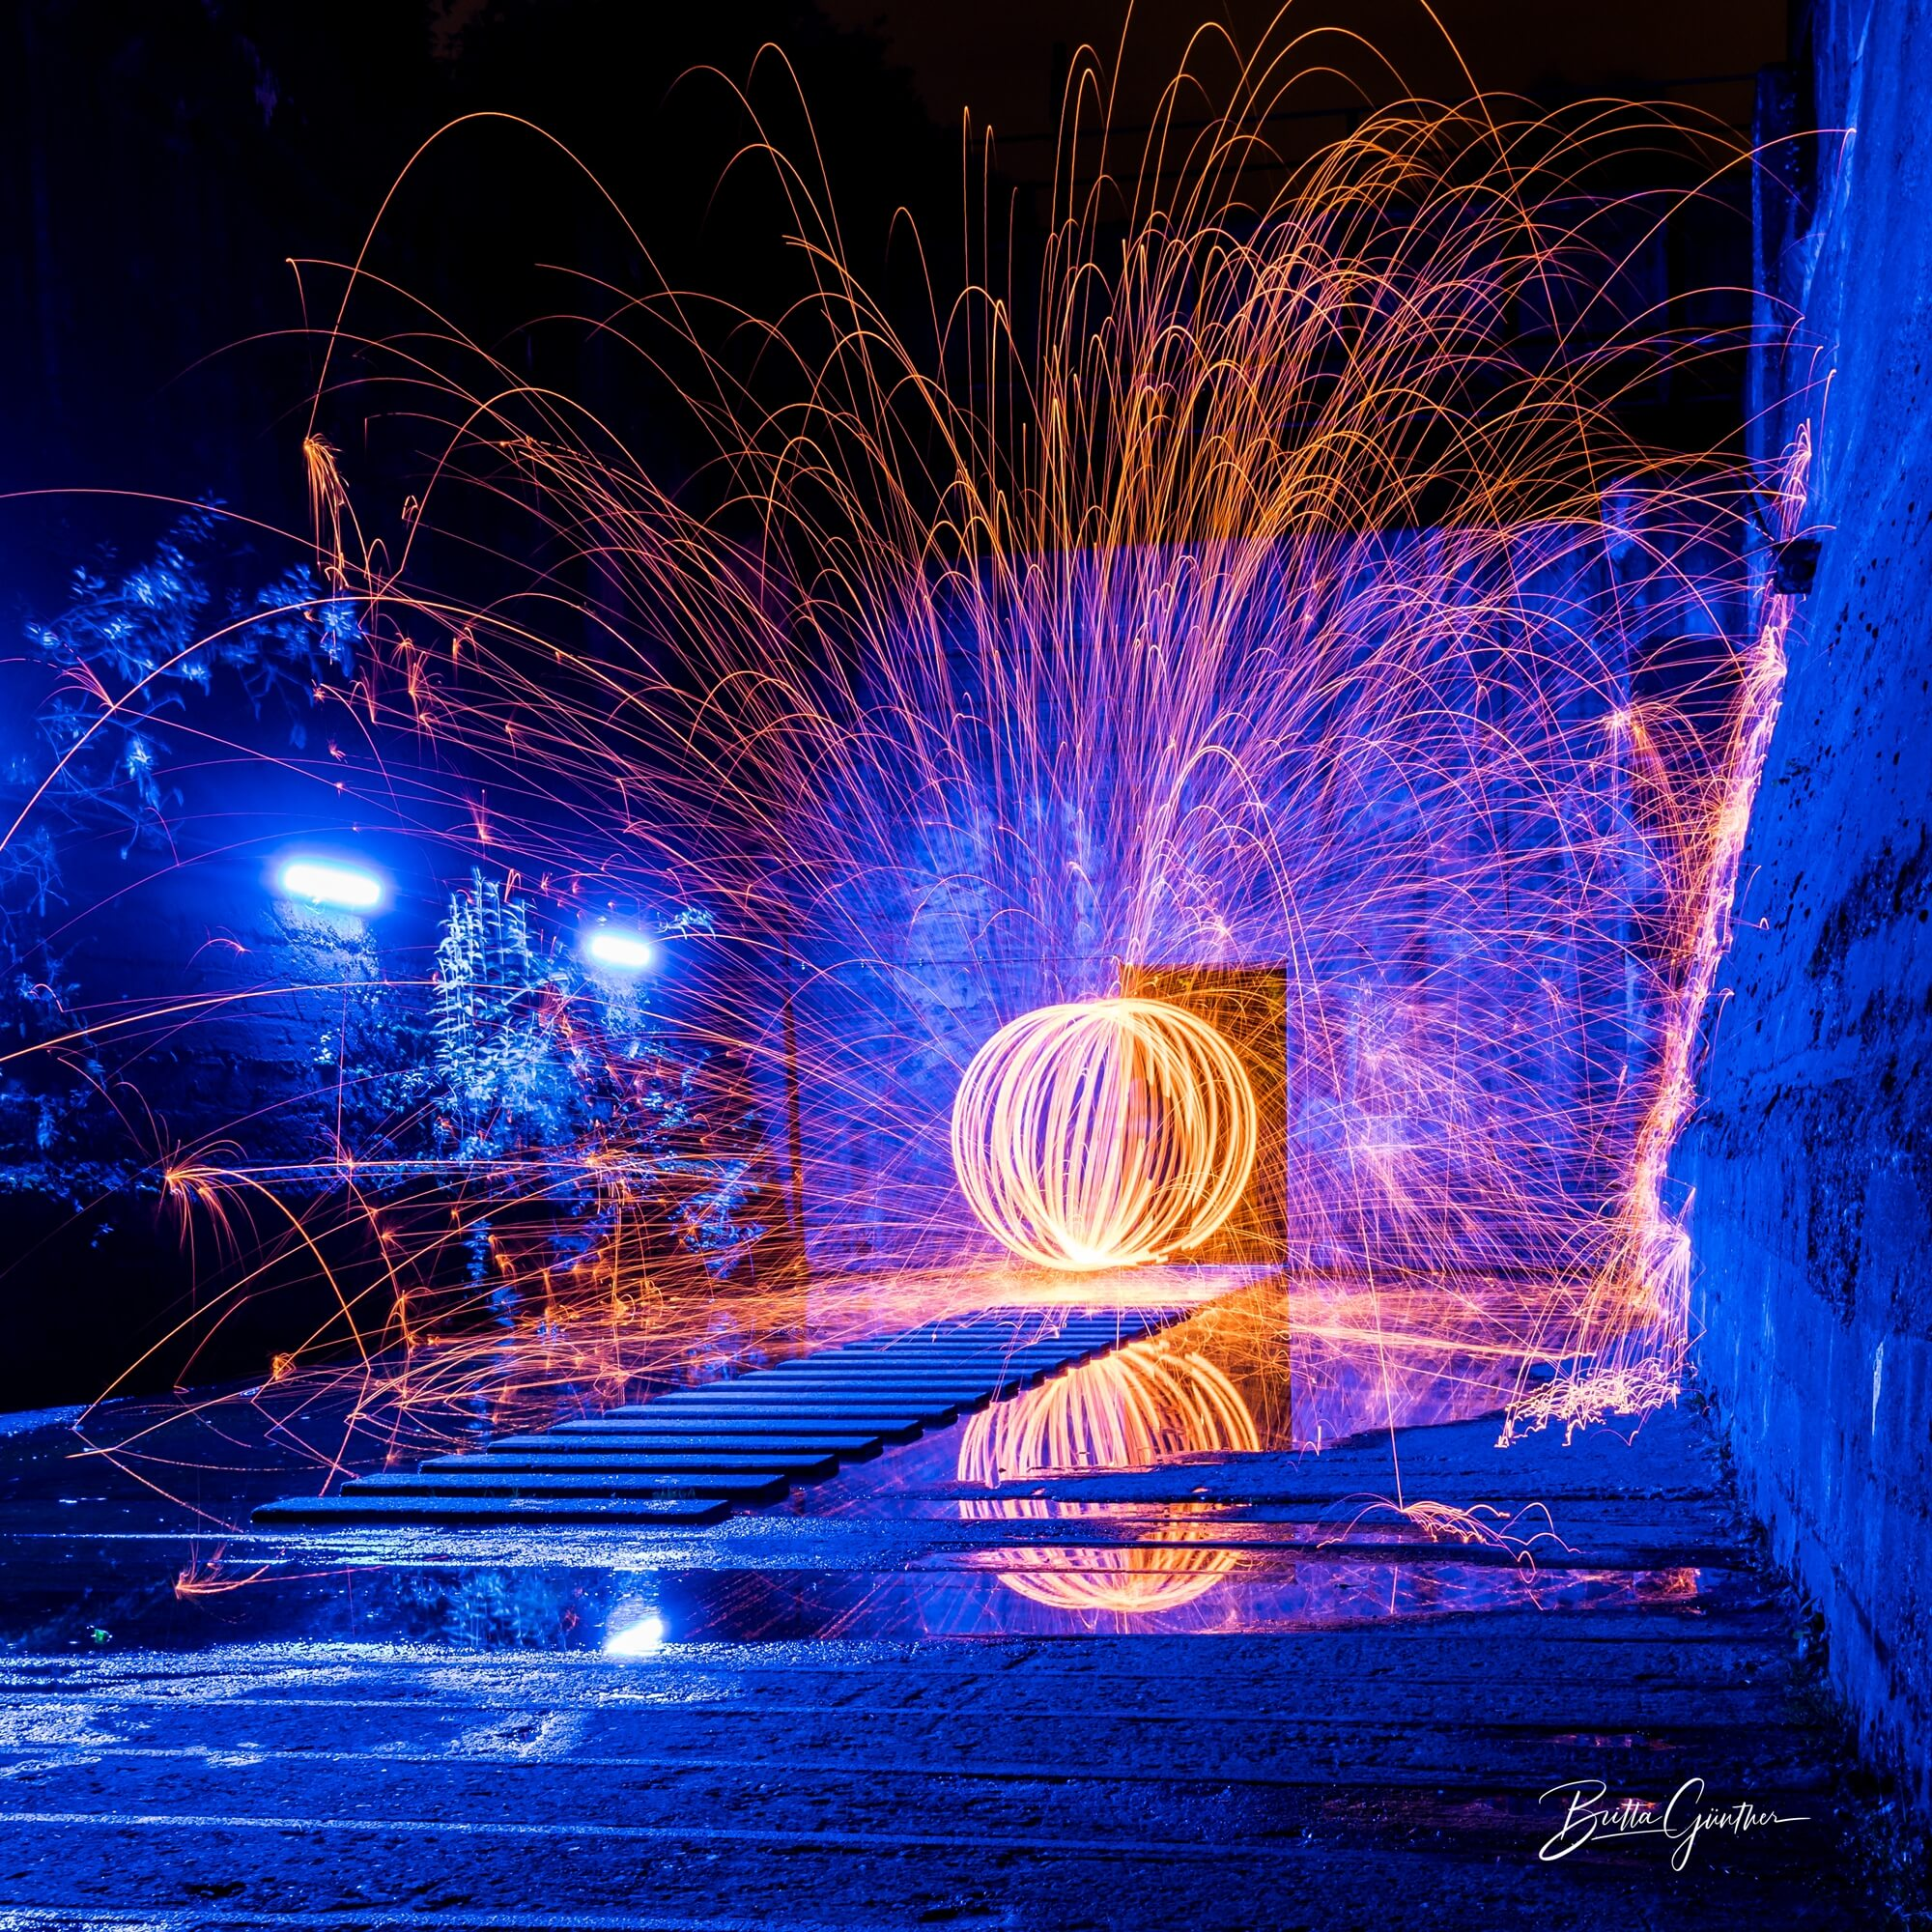 Britta Günther - steel wool light painting